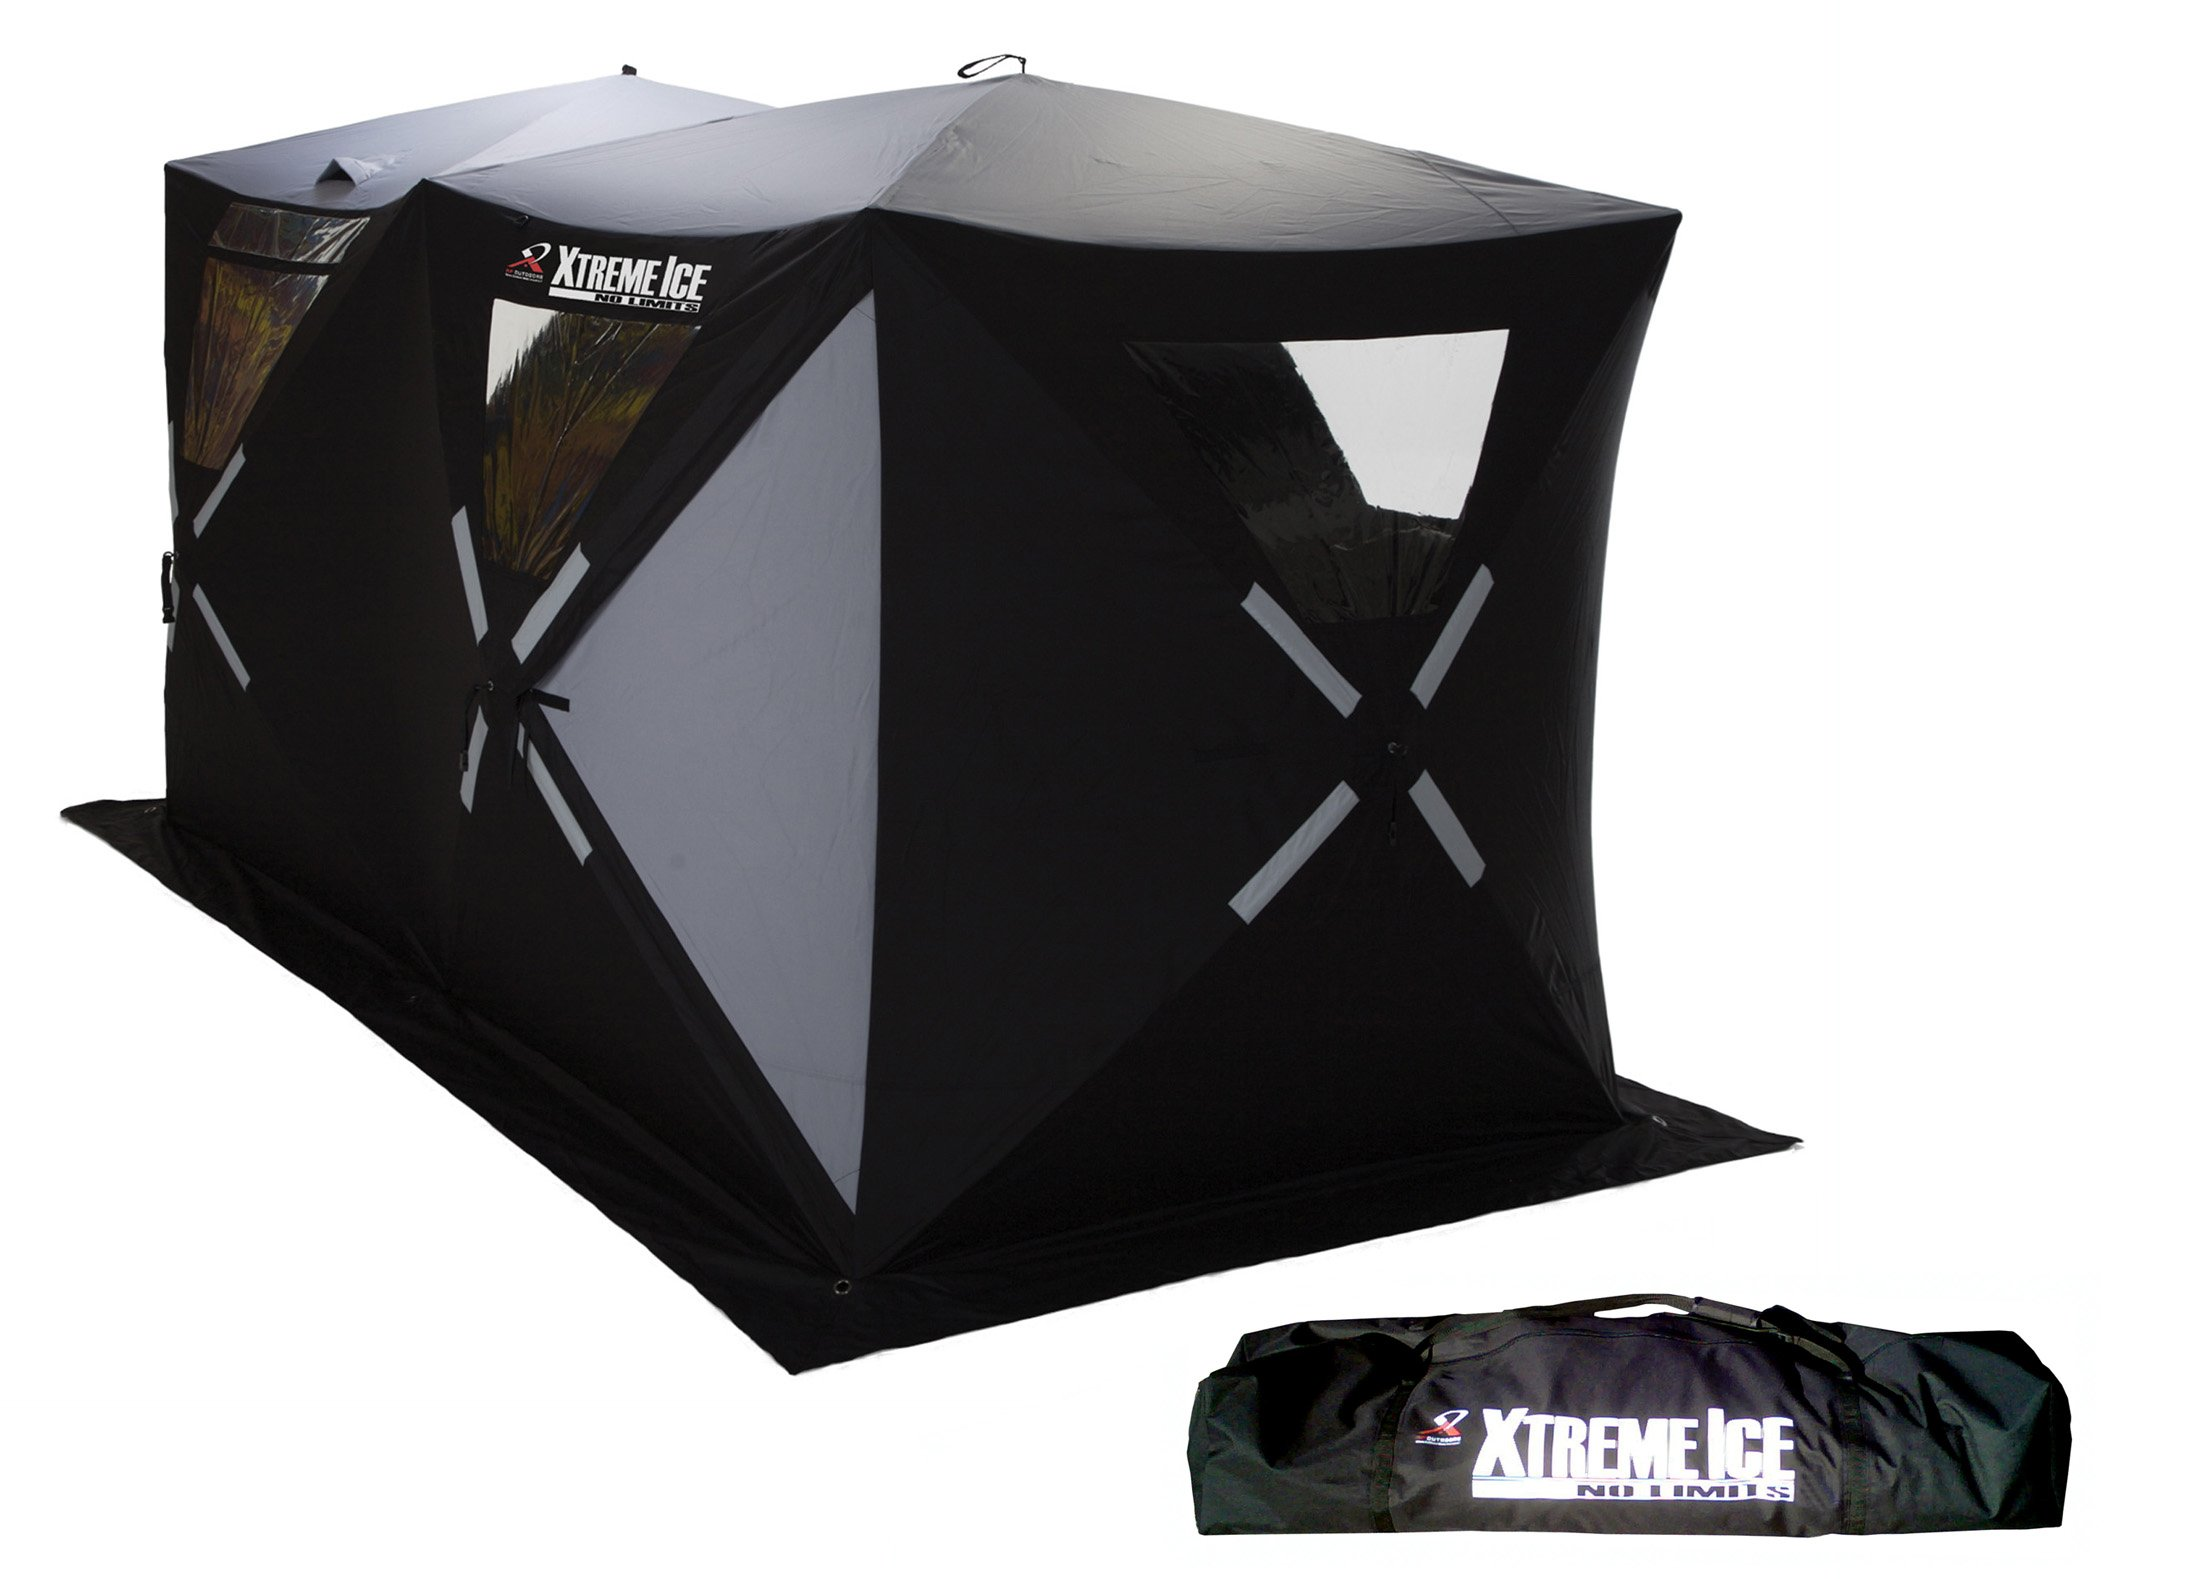 Ap Outdoors Xtreme Ice Xi6 Double Wide 6 Person Hub Style Pop-Up Ice Fishing Shelter (6 X 12-Feet ) by AP Outdoors